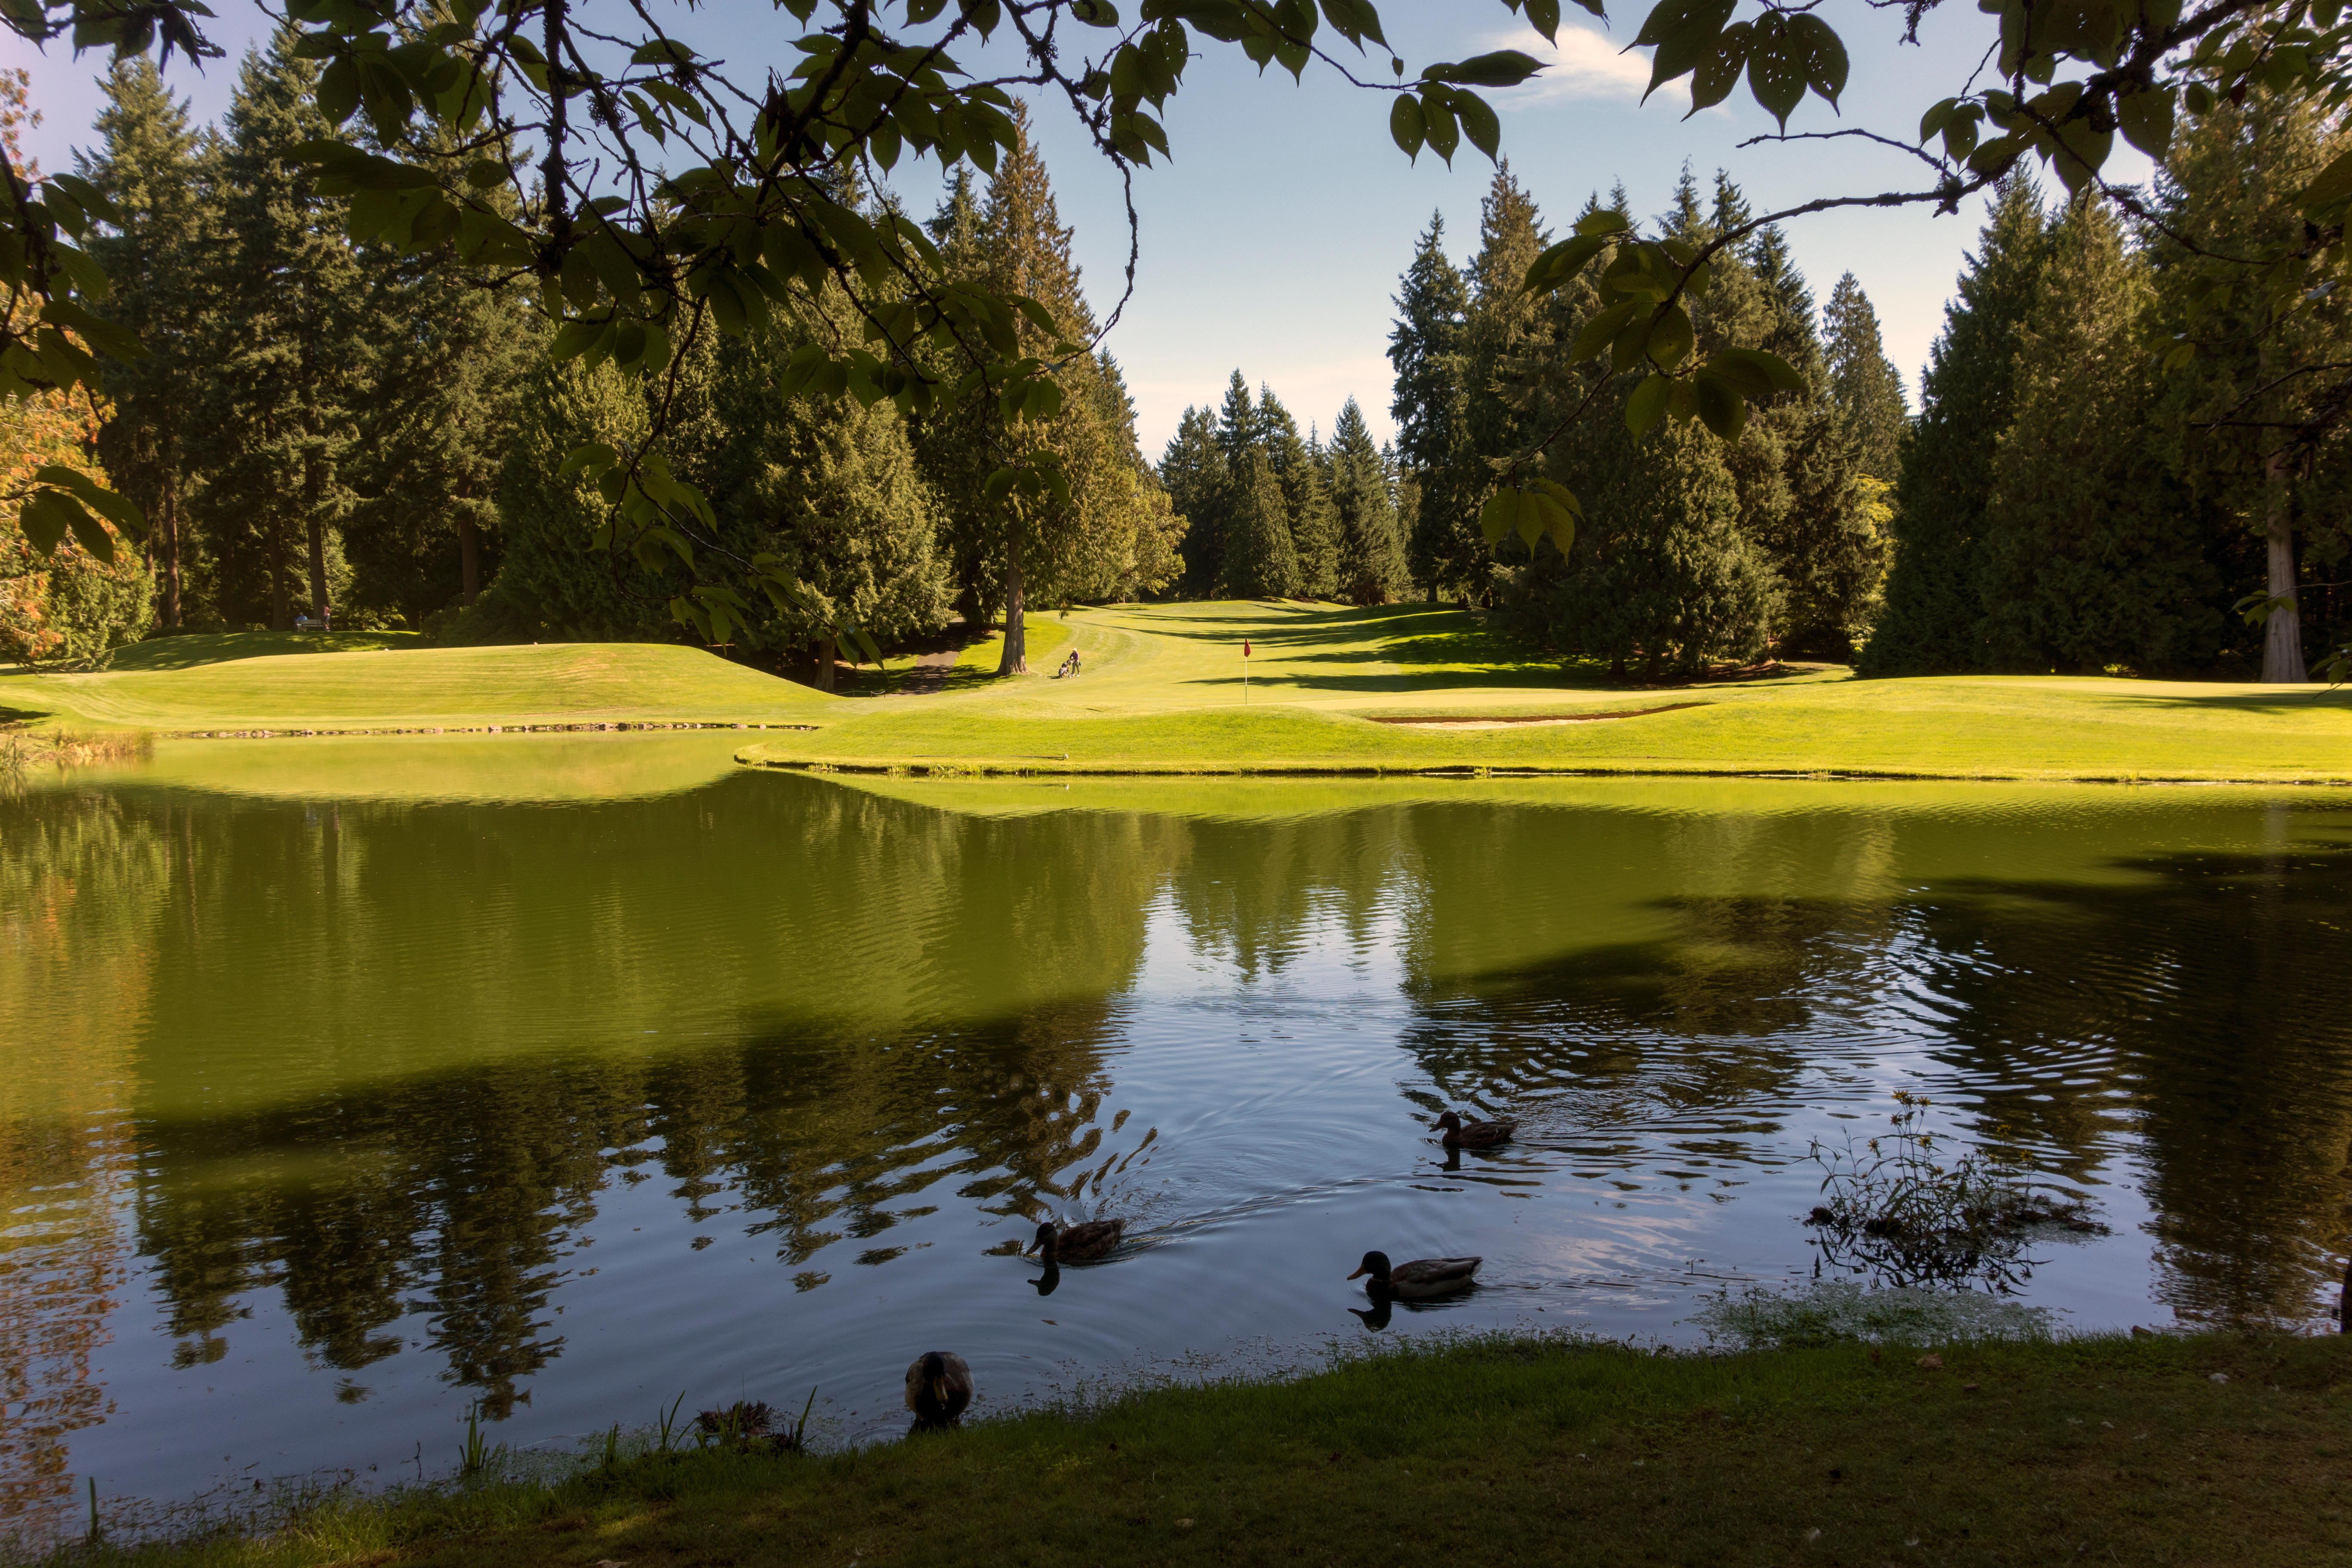 3. Sammamish, Washington: The Seattle-area town is a close third, with a $141,305 median household income. Which gives residents plenty of green to indulge in a round at the Sahalee golf course and Country Club.